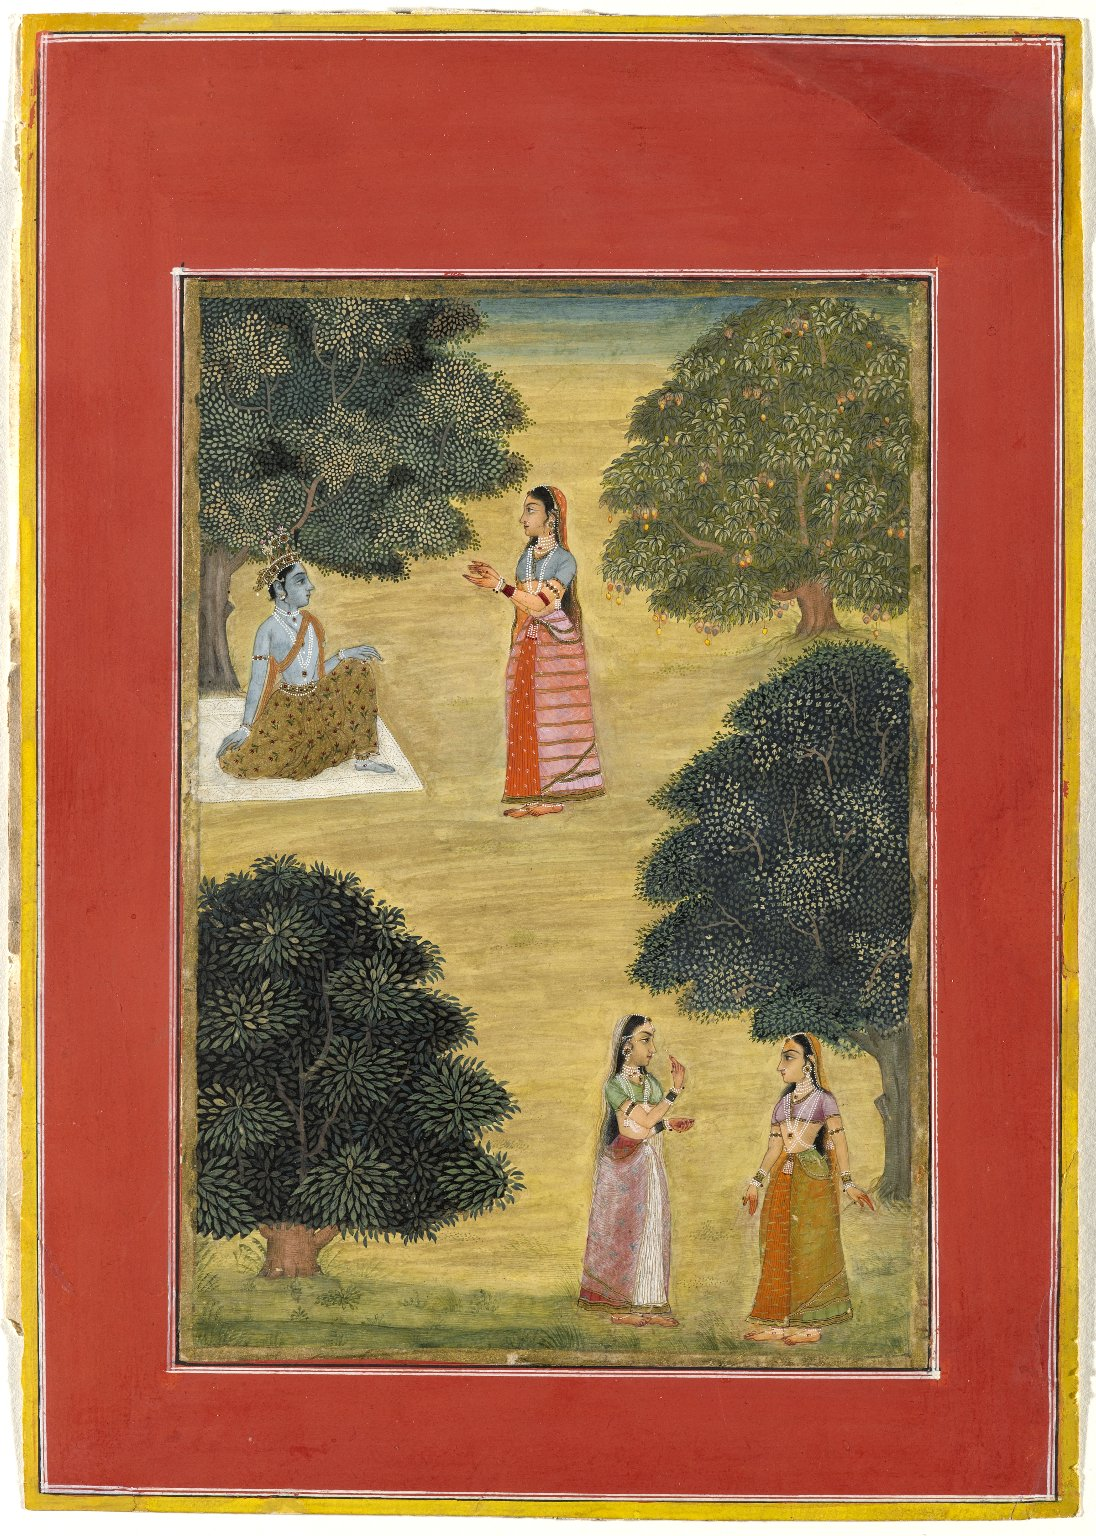 Krishna and Radha by Ruknudin - Miniature Painting, 1684